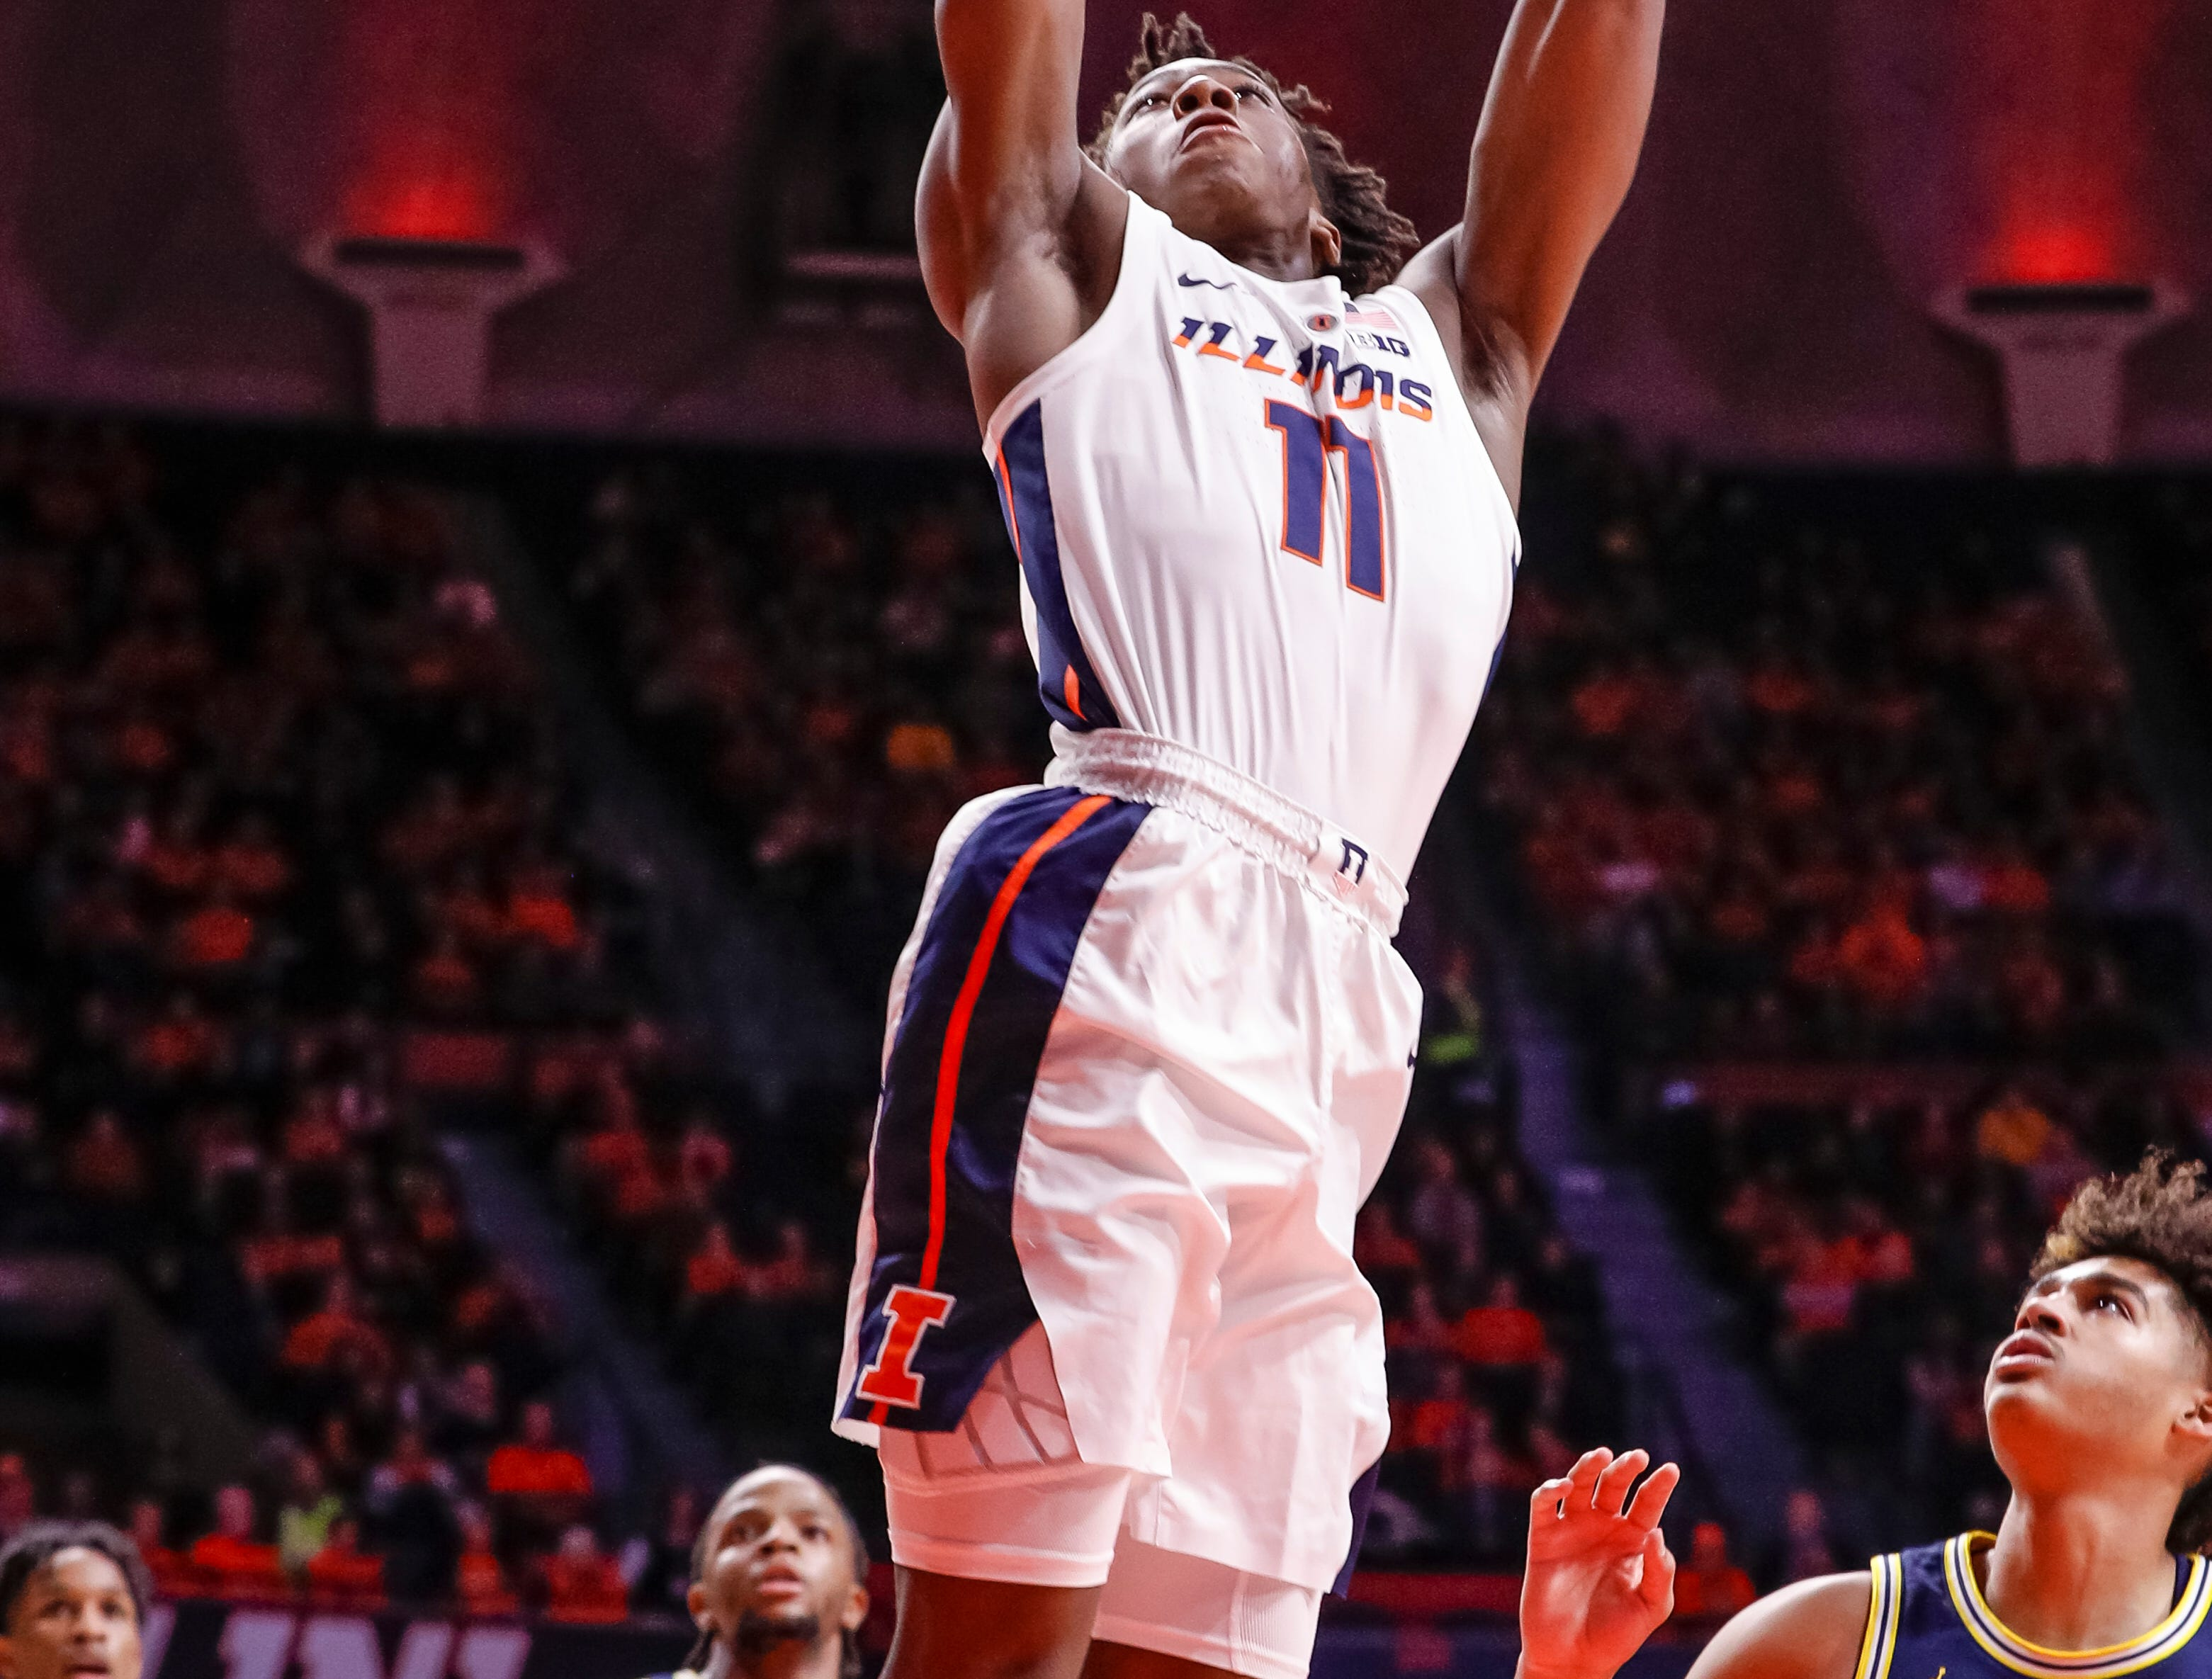 CHAMPAIGN, IL - JANUARY 10: Ayo Dosunmu #11 of the Illinois Fighting Illini goes up for a shot against the Michigan Wolverines during the first half of action at State Farm Center on January 10, 2019 in Champaign, Illinois. (Photo by Michael Hickey/Getty Images)